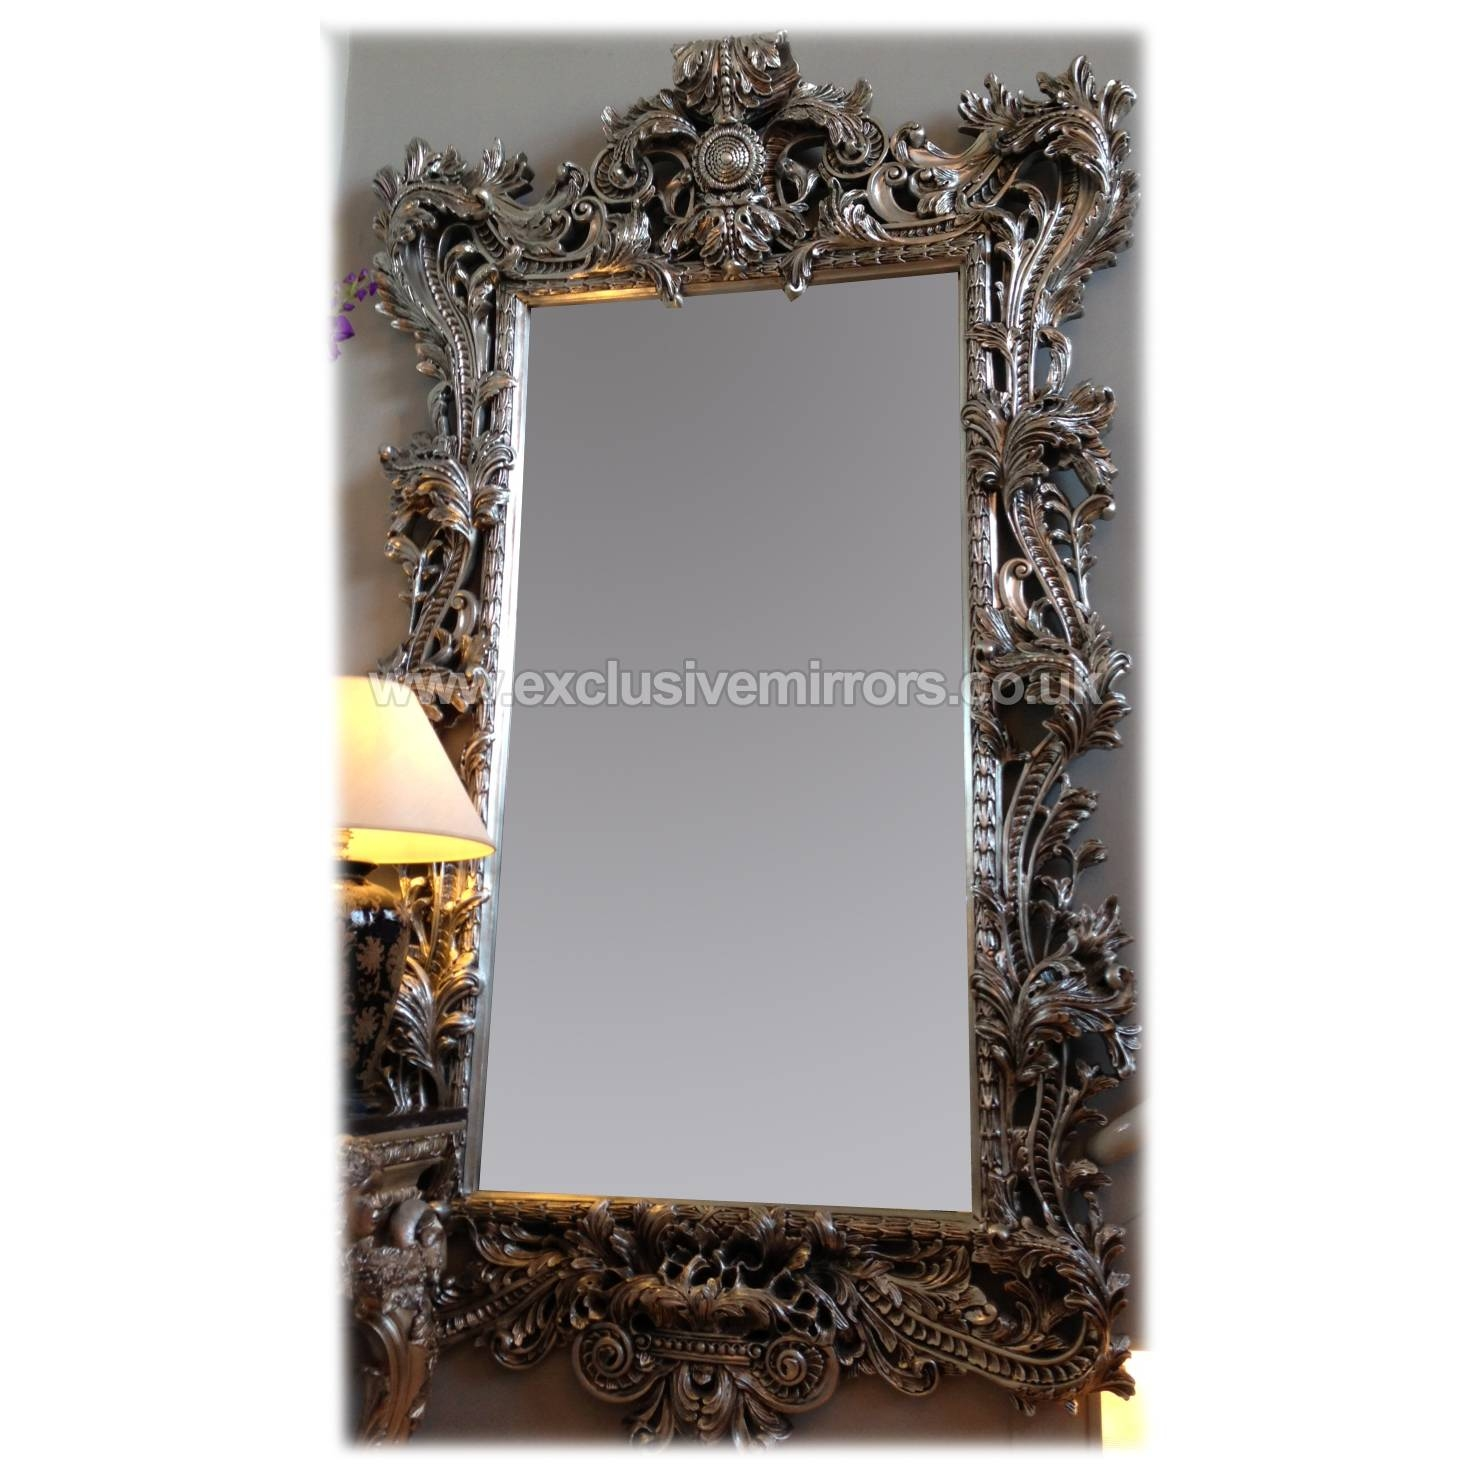 Extra Large Wall Mirrors 109 Cute Interior And Large Gold Very regarding Extra Large Ornate Mirrors (Image 9 of 25)